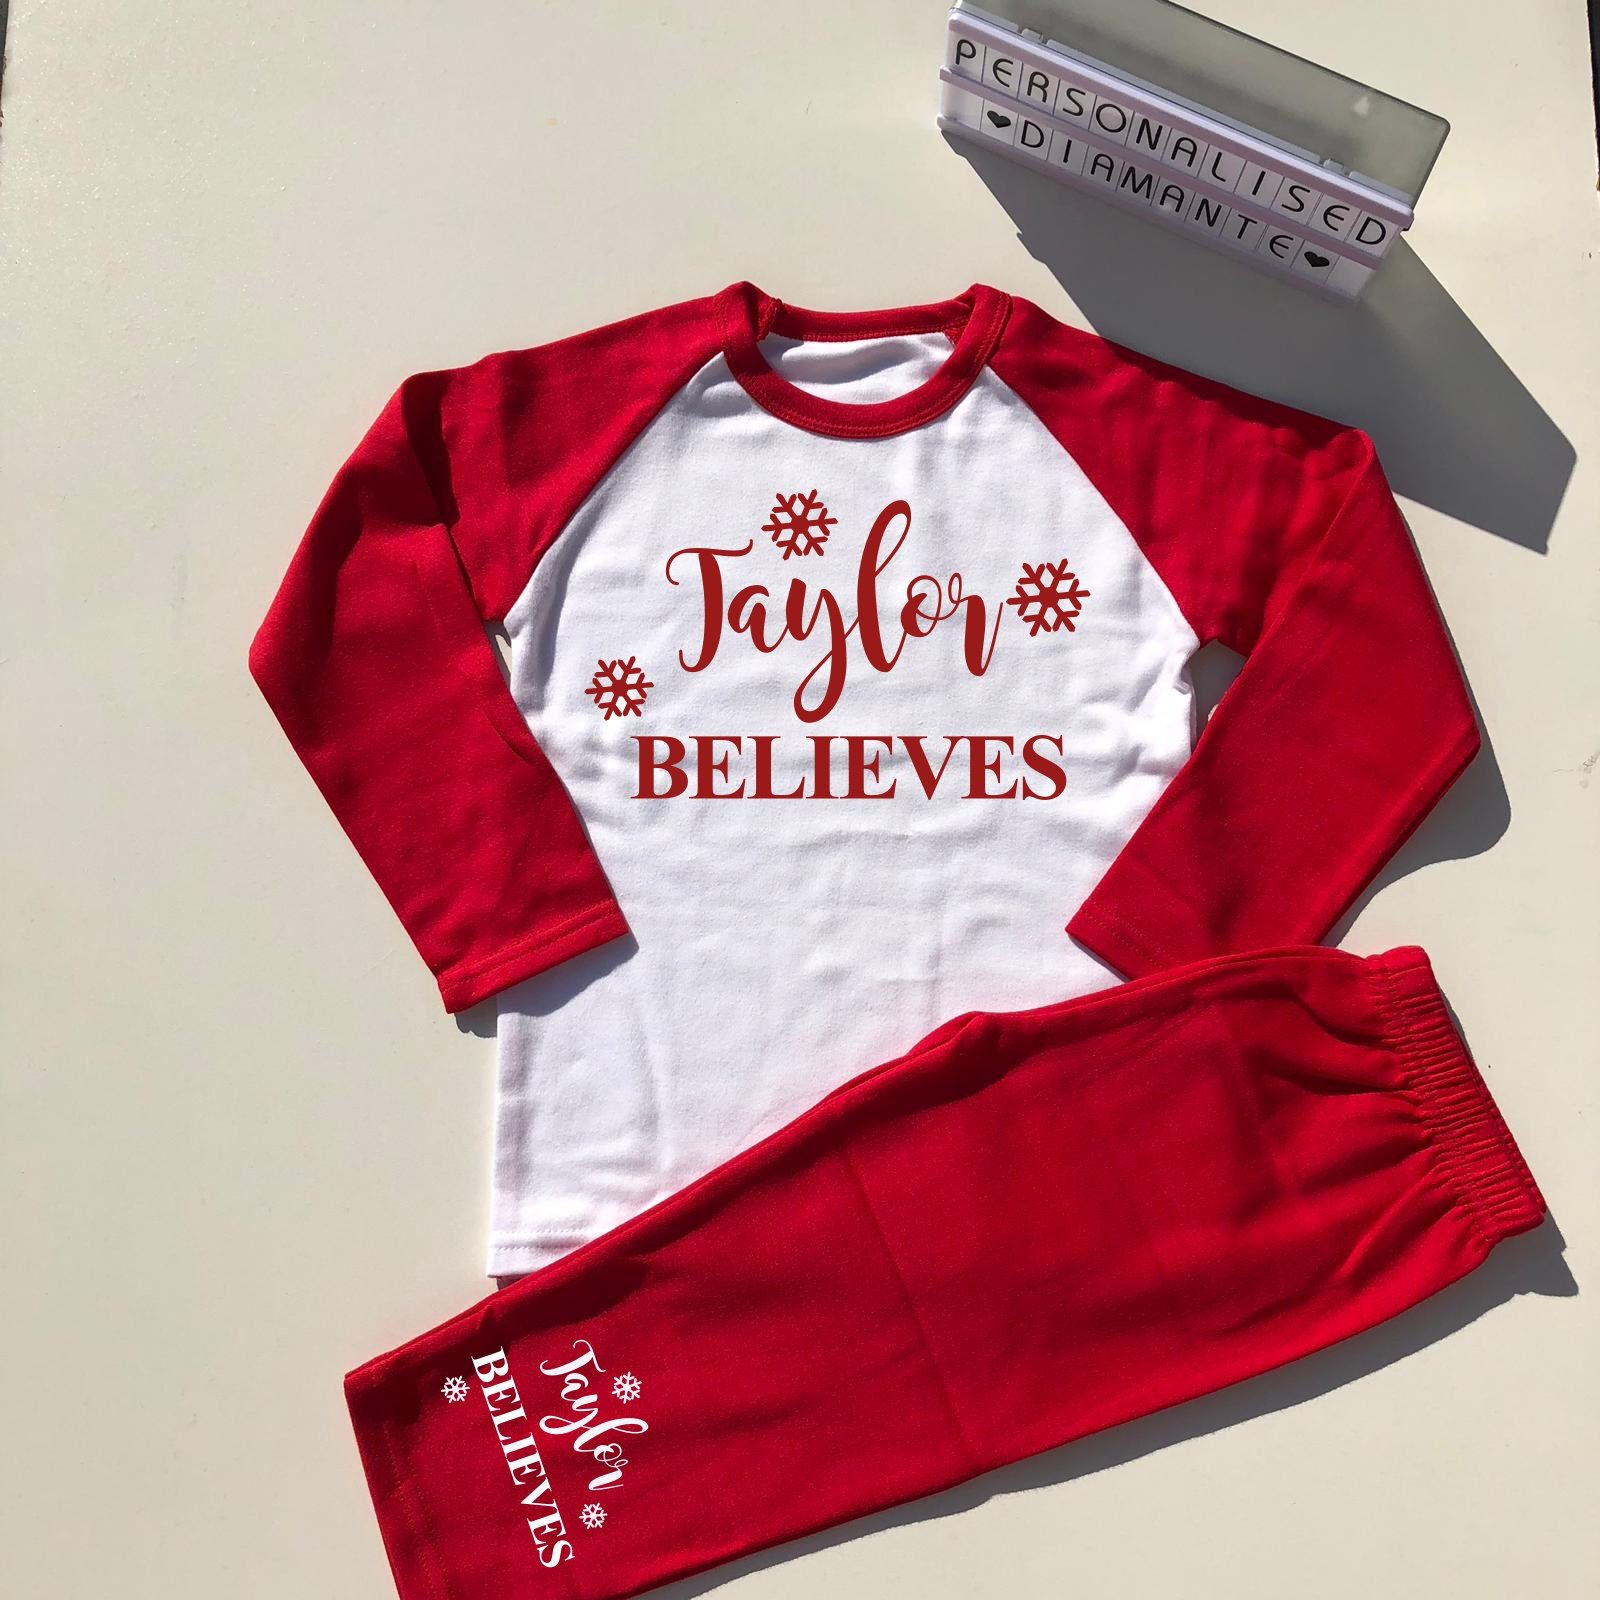 Personalised children/'s Christmas pyjamas PJs,Any name believes,3-4 and 4-5 yrs